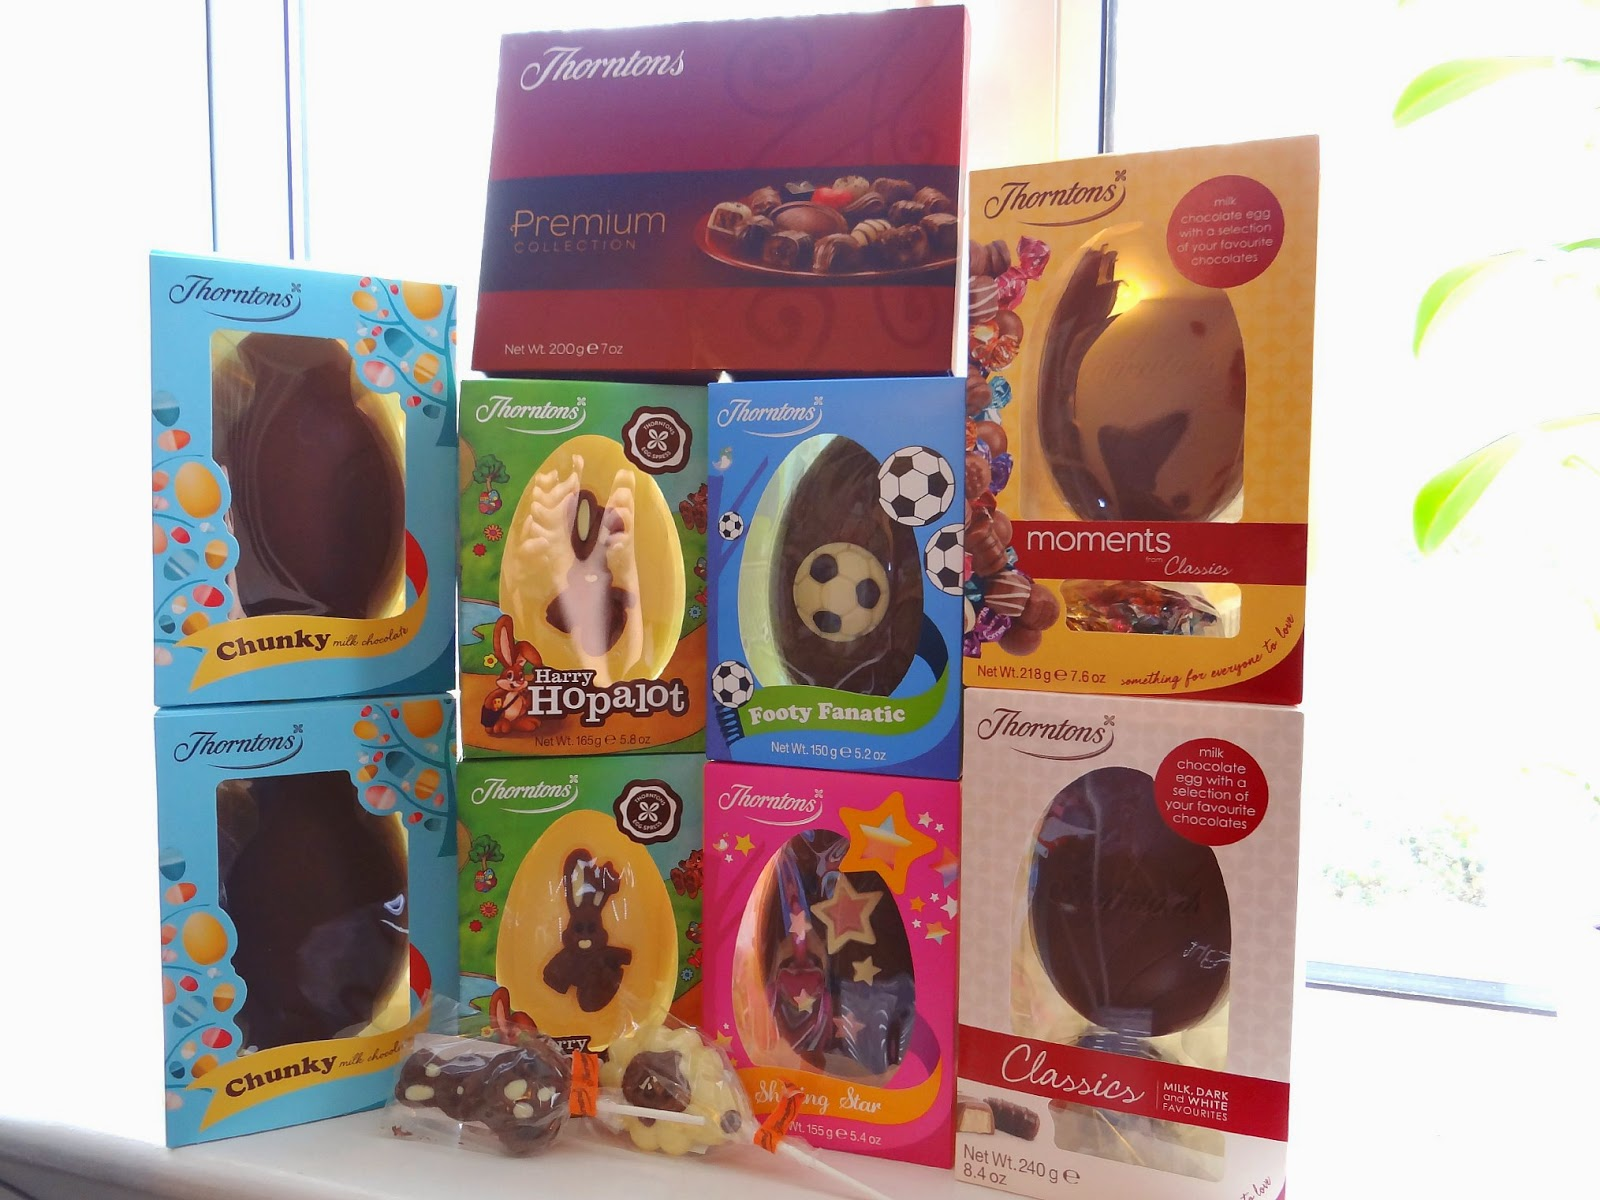 Easter, chocolate eggs, Thorntons chocolate